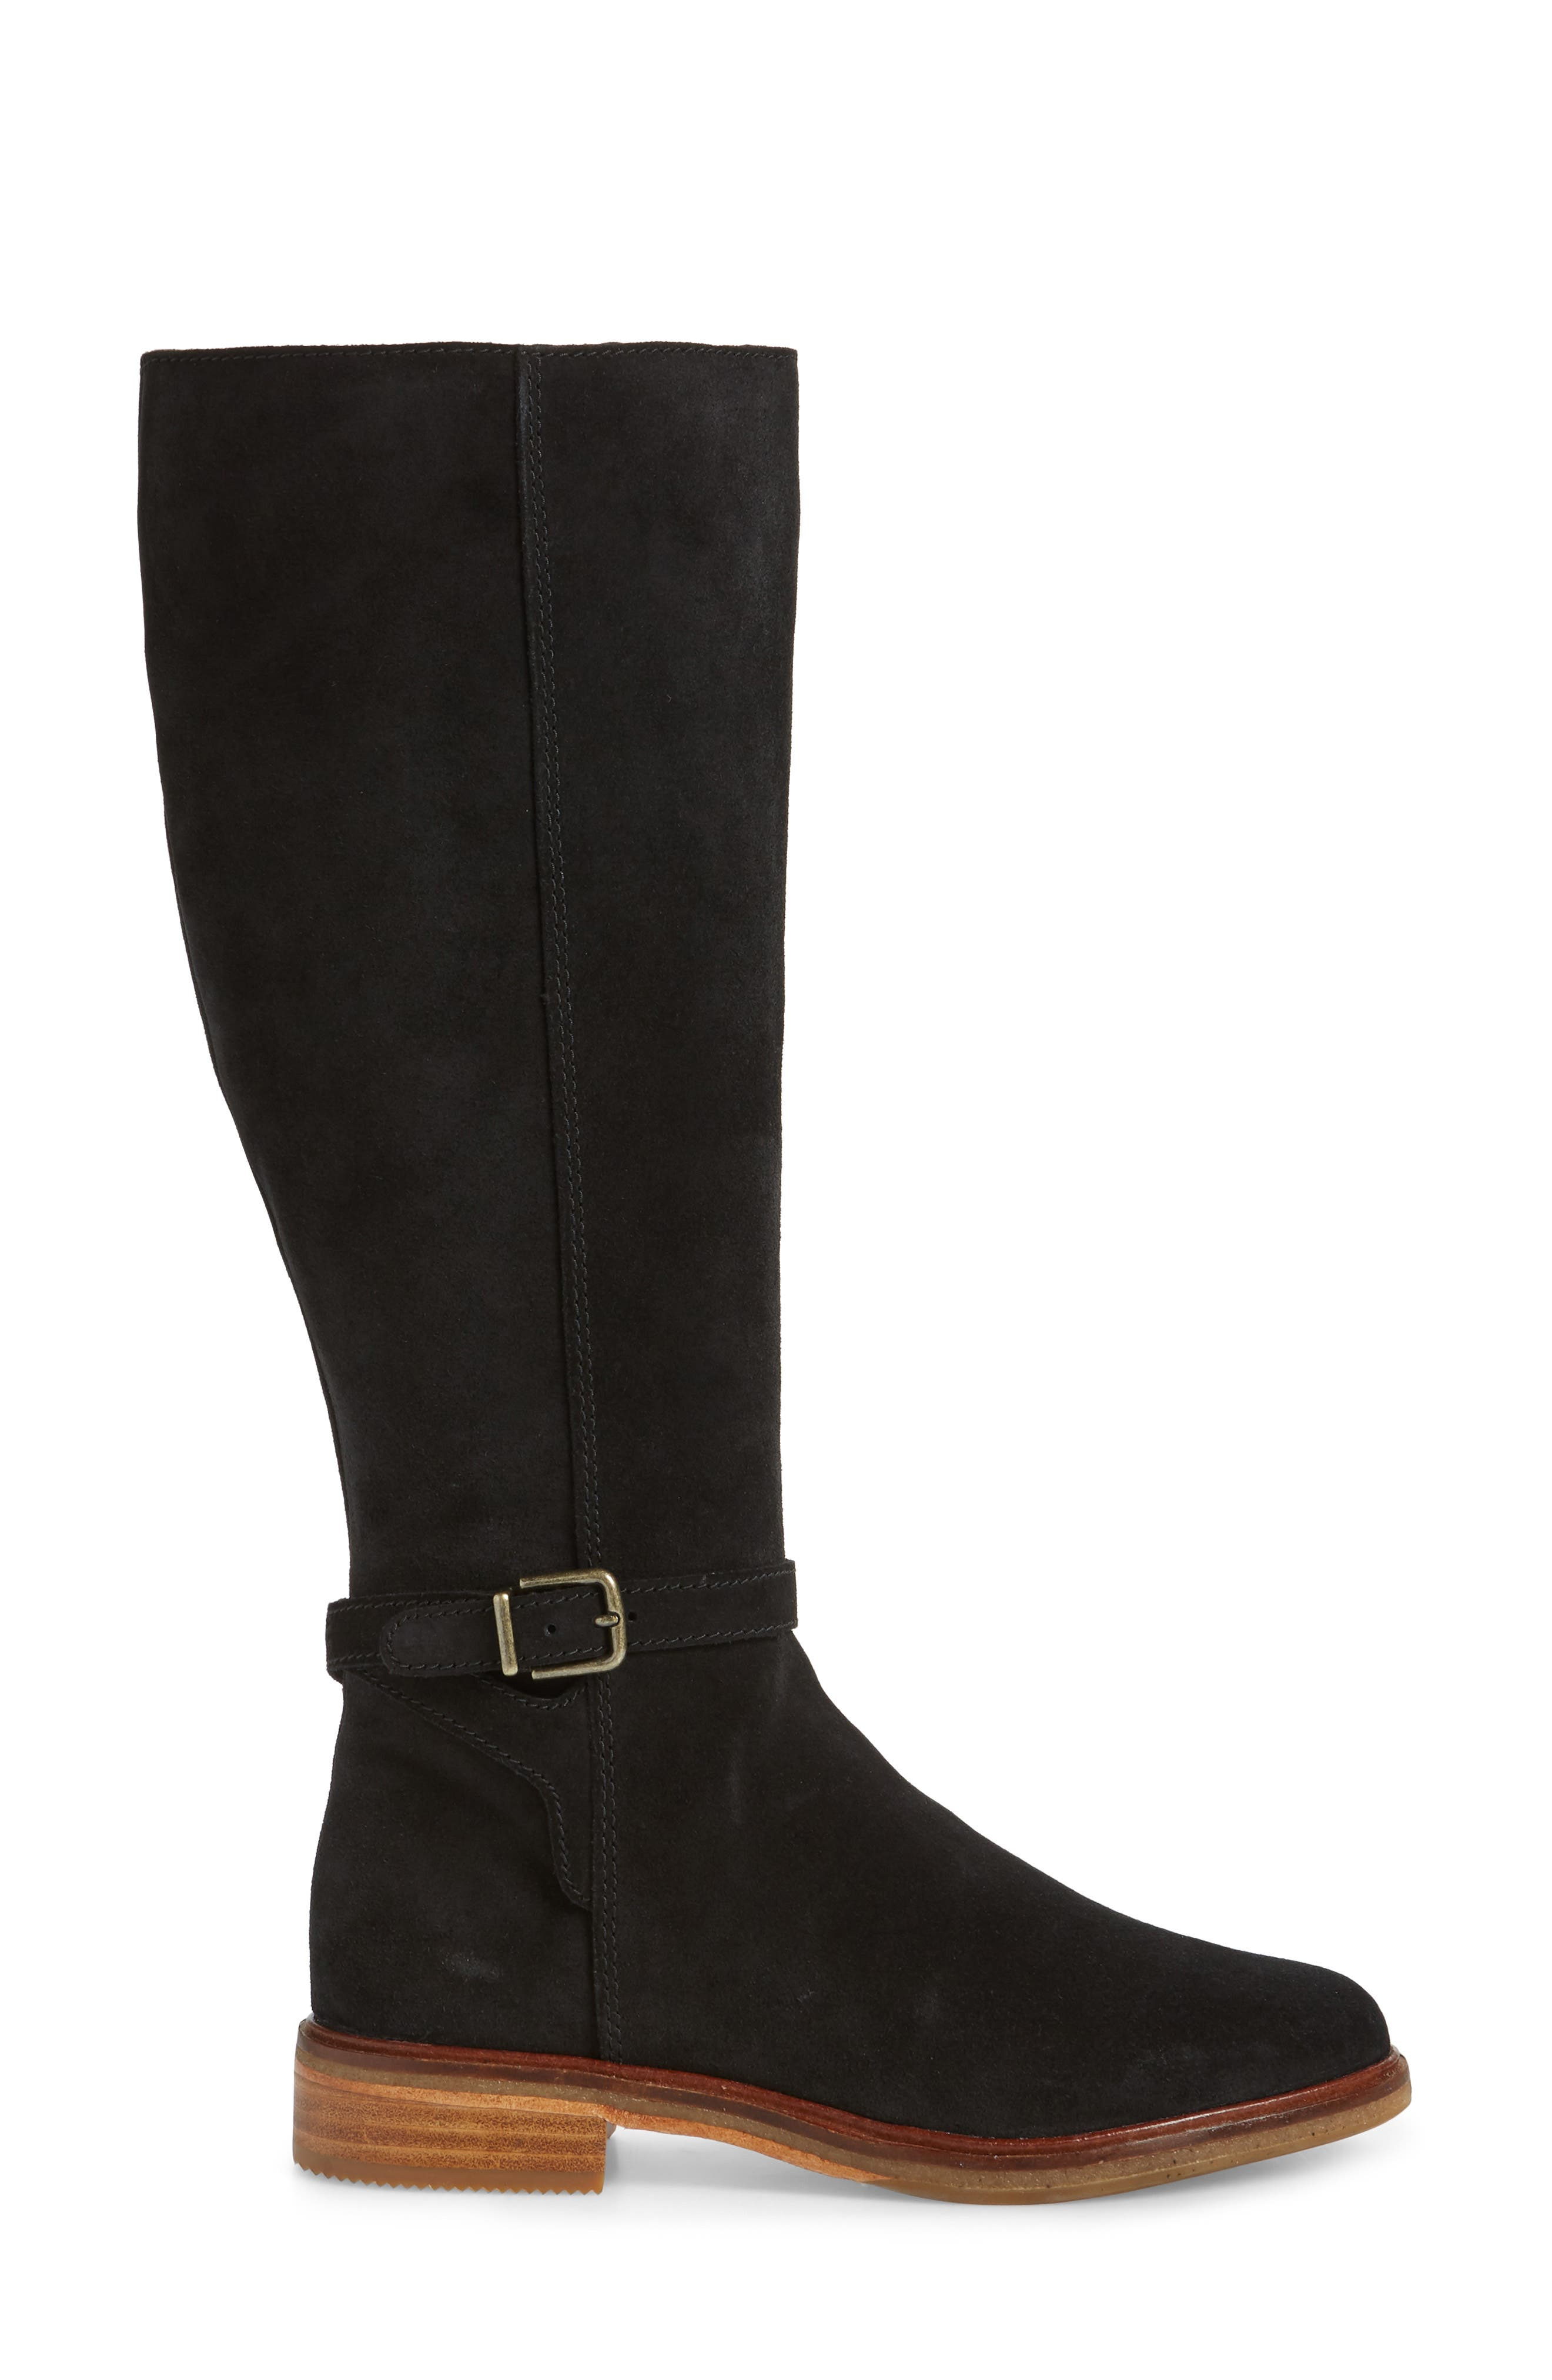 CLARKS<SUP>®</SUP>, Clarkdale Clad Boot, Alternate thumbnail 3, color, BLACK SUEDE